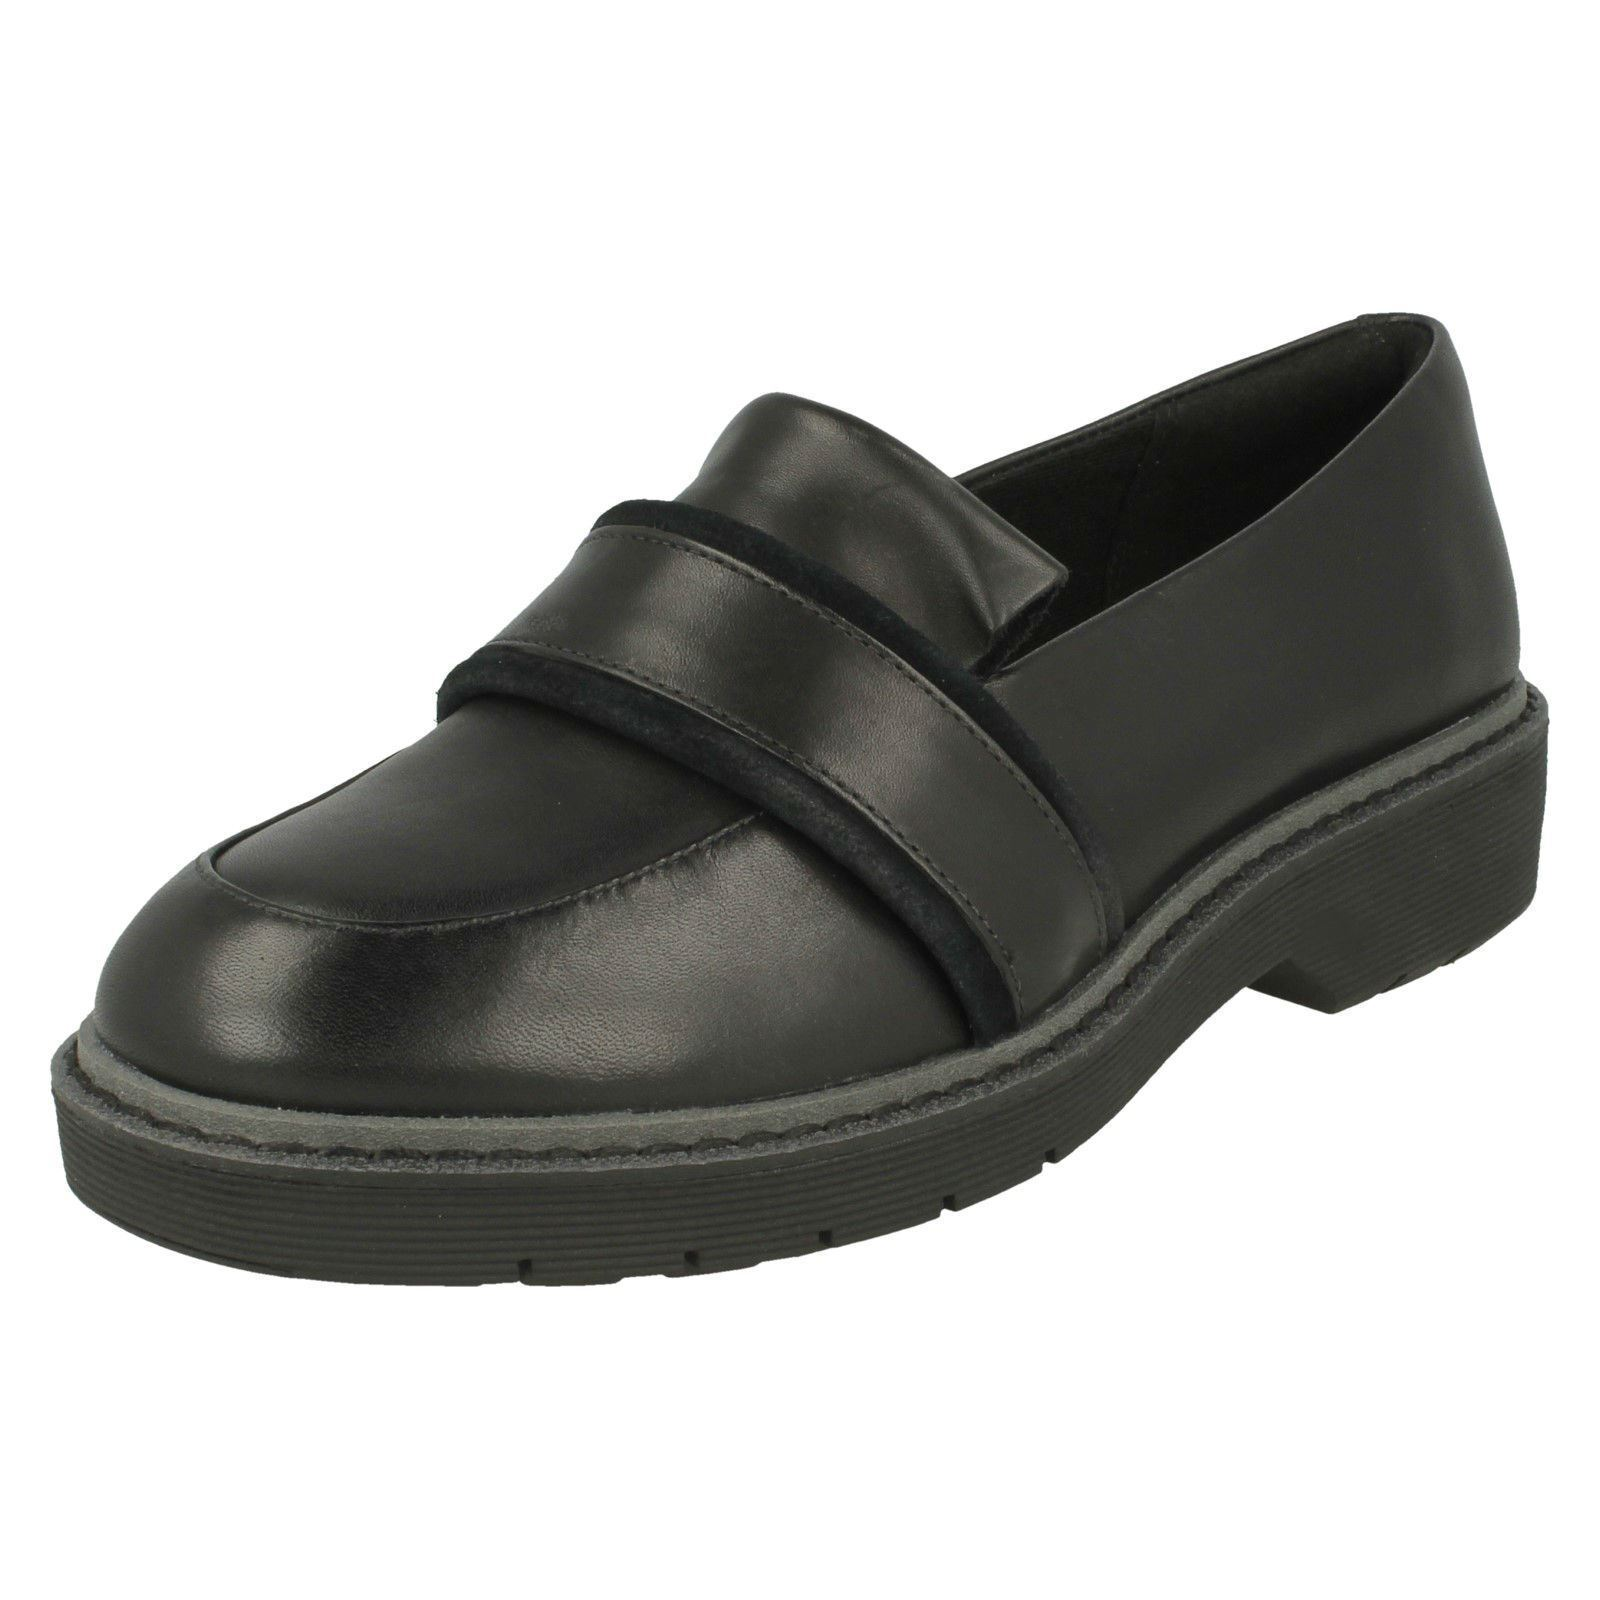 Ladies Clarks Clarks Clarks Flat Loafer Inspired shoes - Alexa Ruby a542de